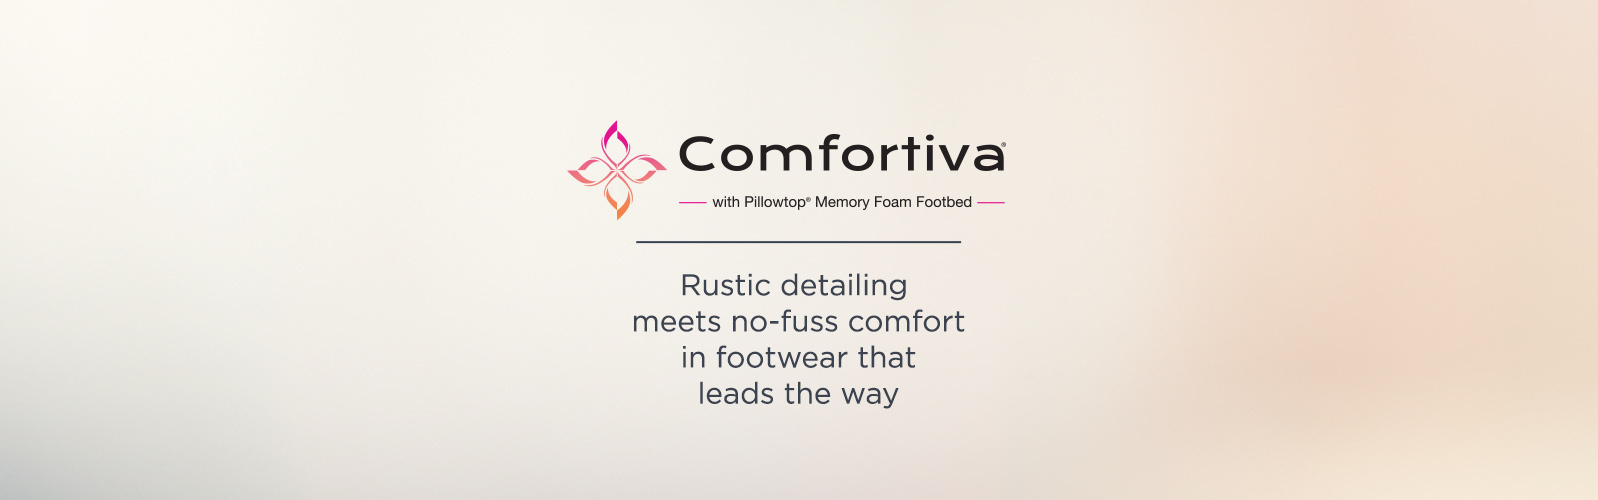 Comfortiva. Rustic detailing meets no-fuss comfort in footwear that leads the way